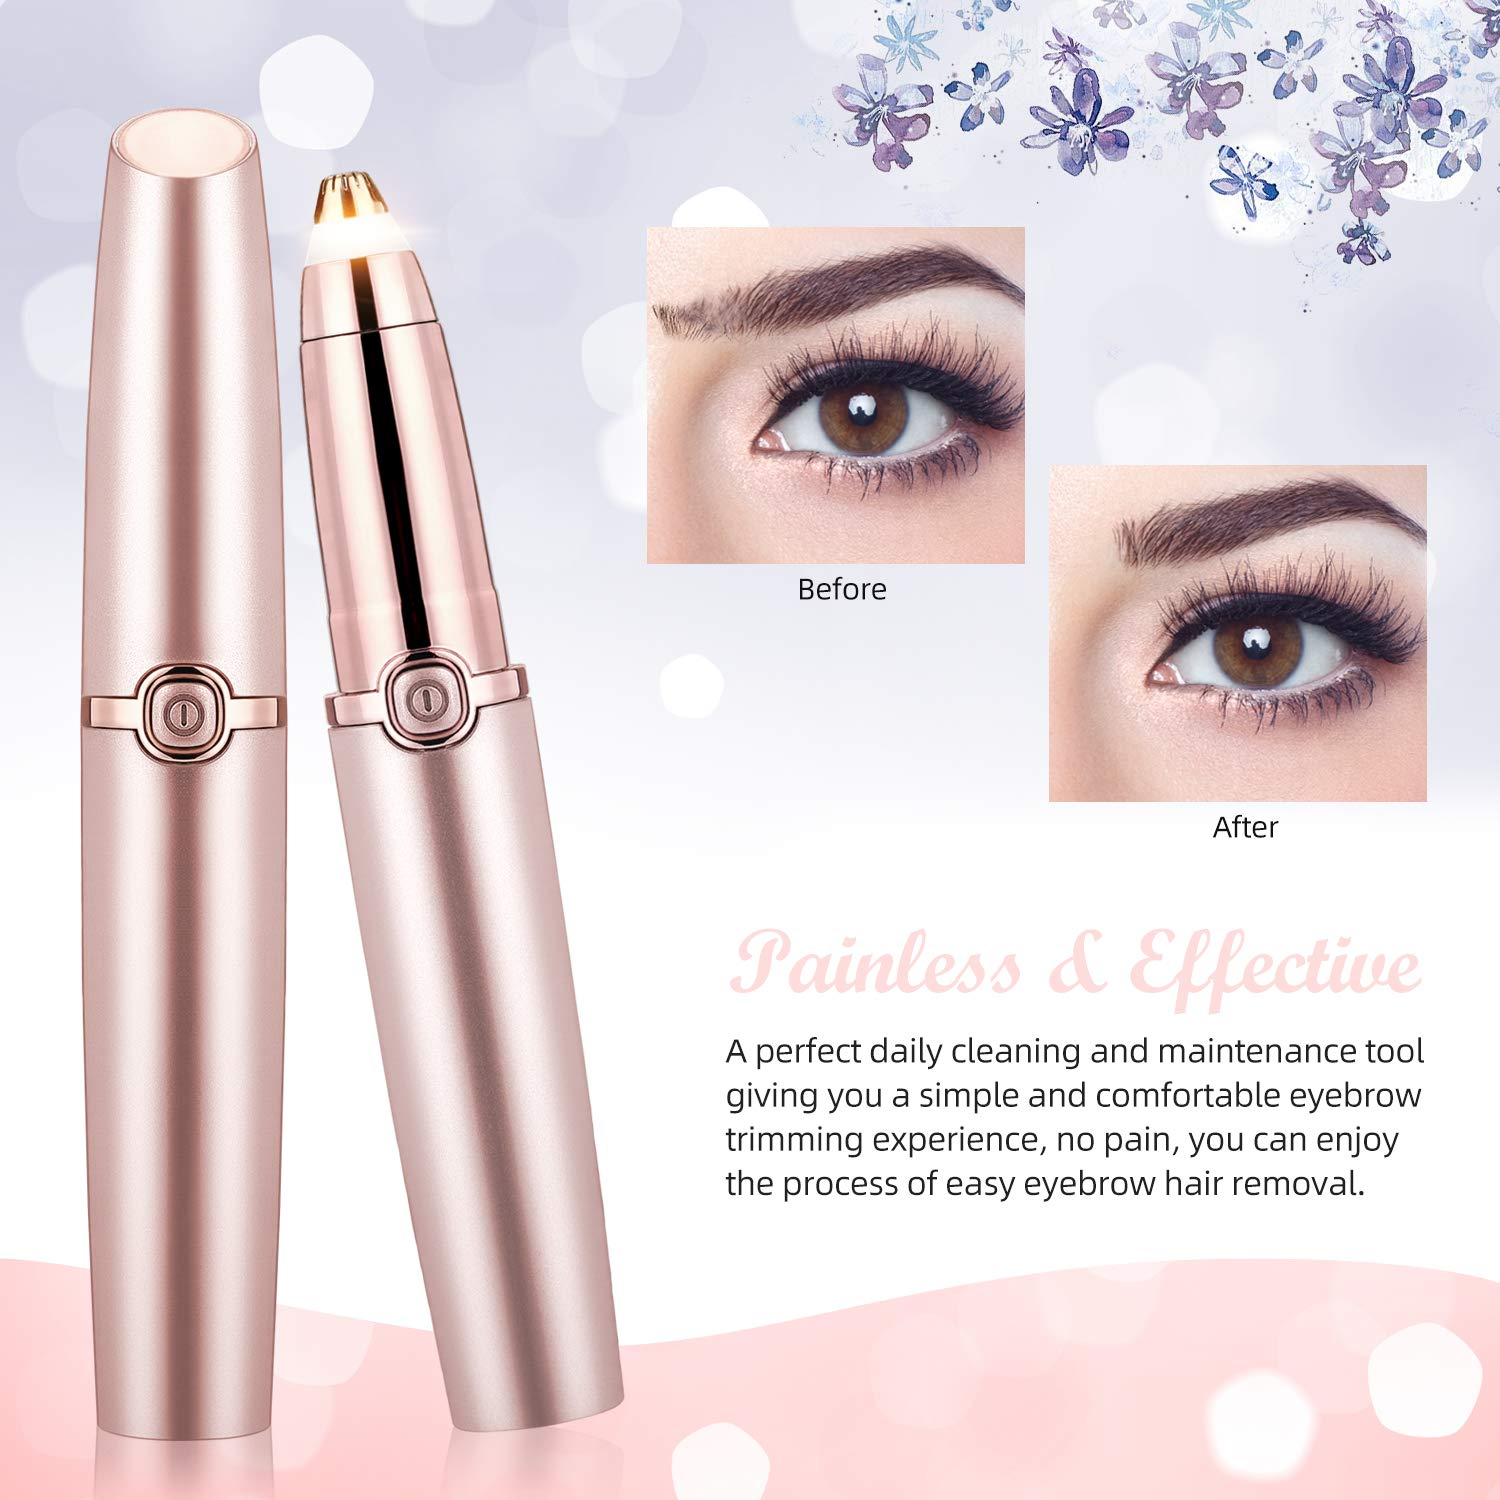 Portable Eyebrow Hair Remover, WLWQ Painless Eyebrow Trimmer for Women, Electric Eyebrow Hair Removal Razor Epilator with LED Light for Peach Fuzz, Eyebrow, Chin, body, USB Rechargeable